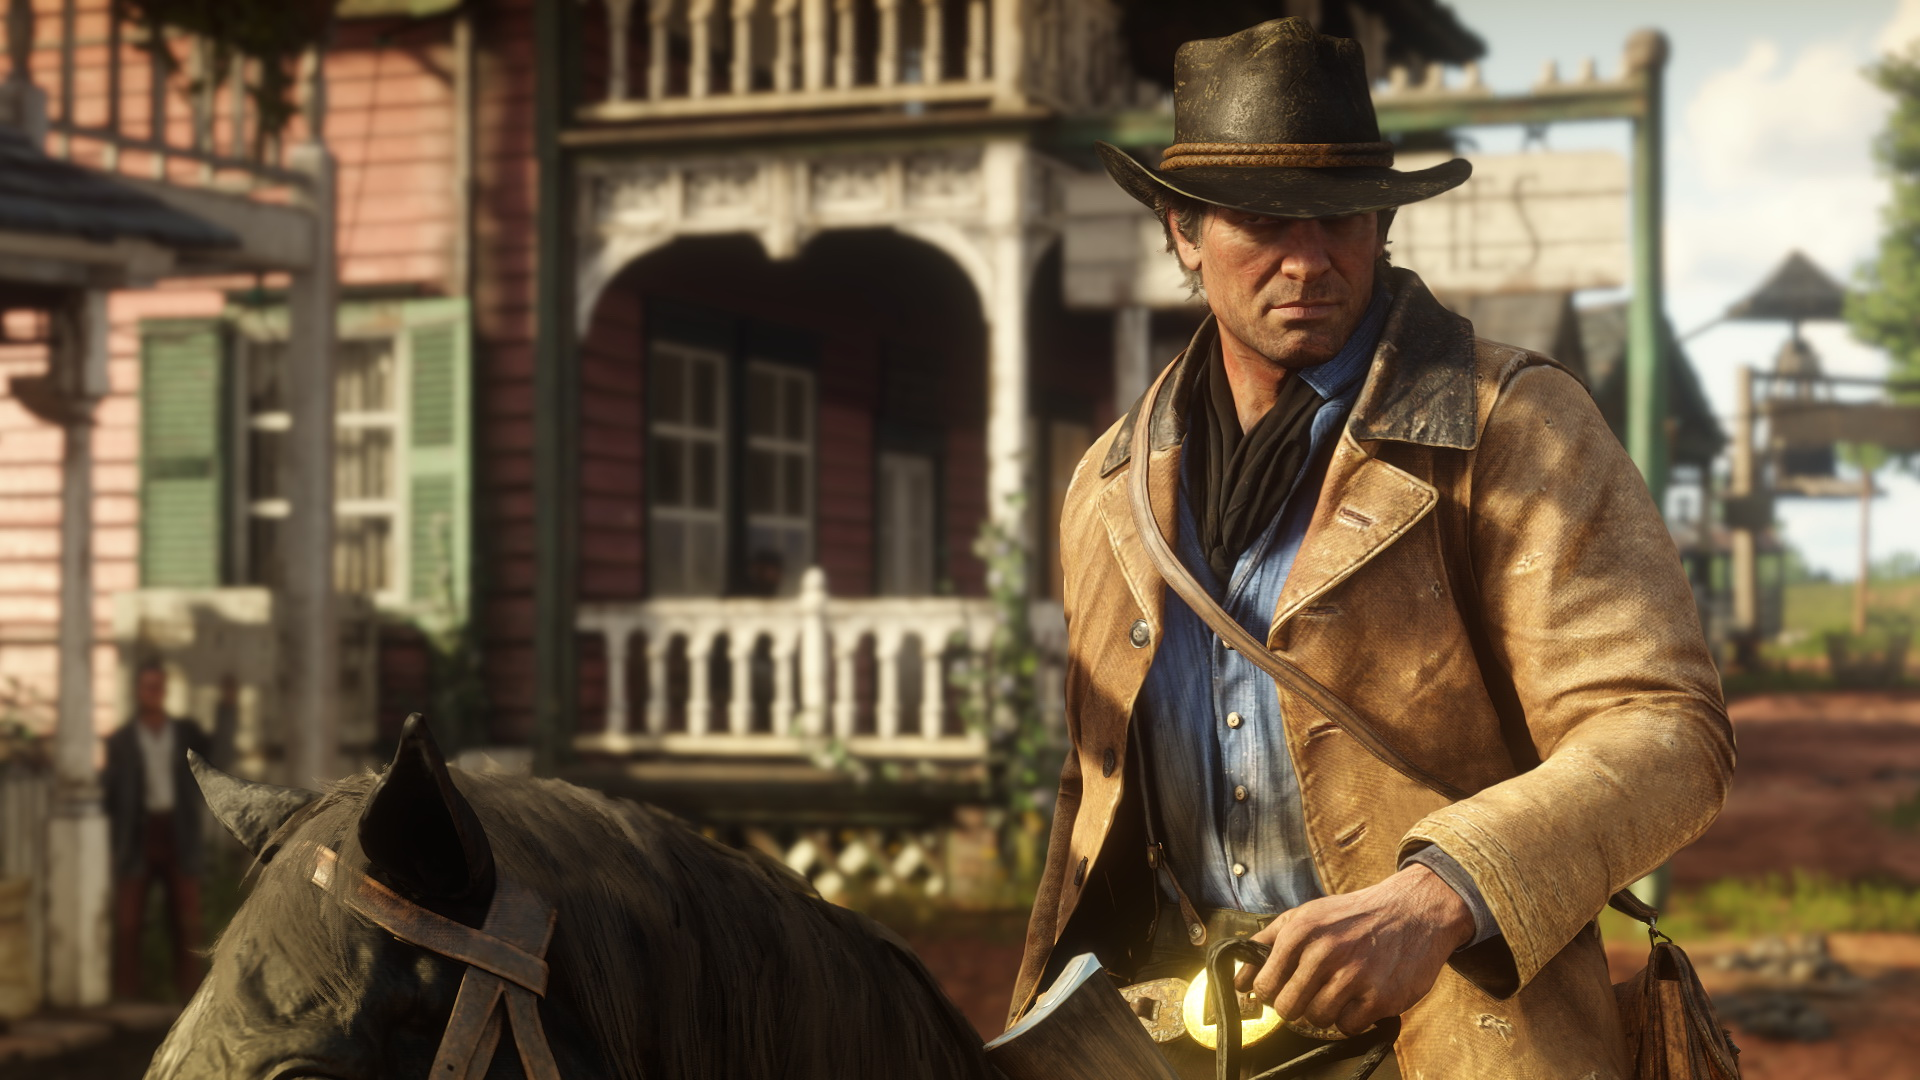 Red Dead Redemption 2 Has Been In Development For 8 Years